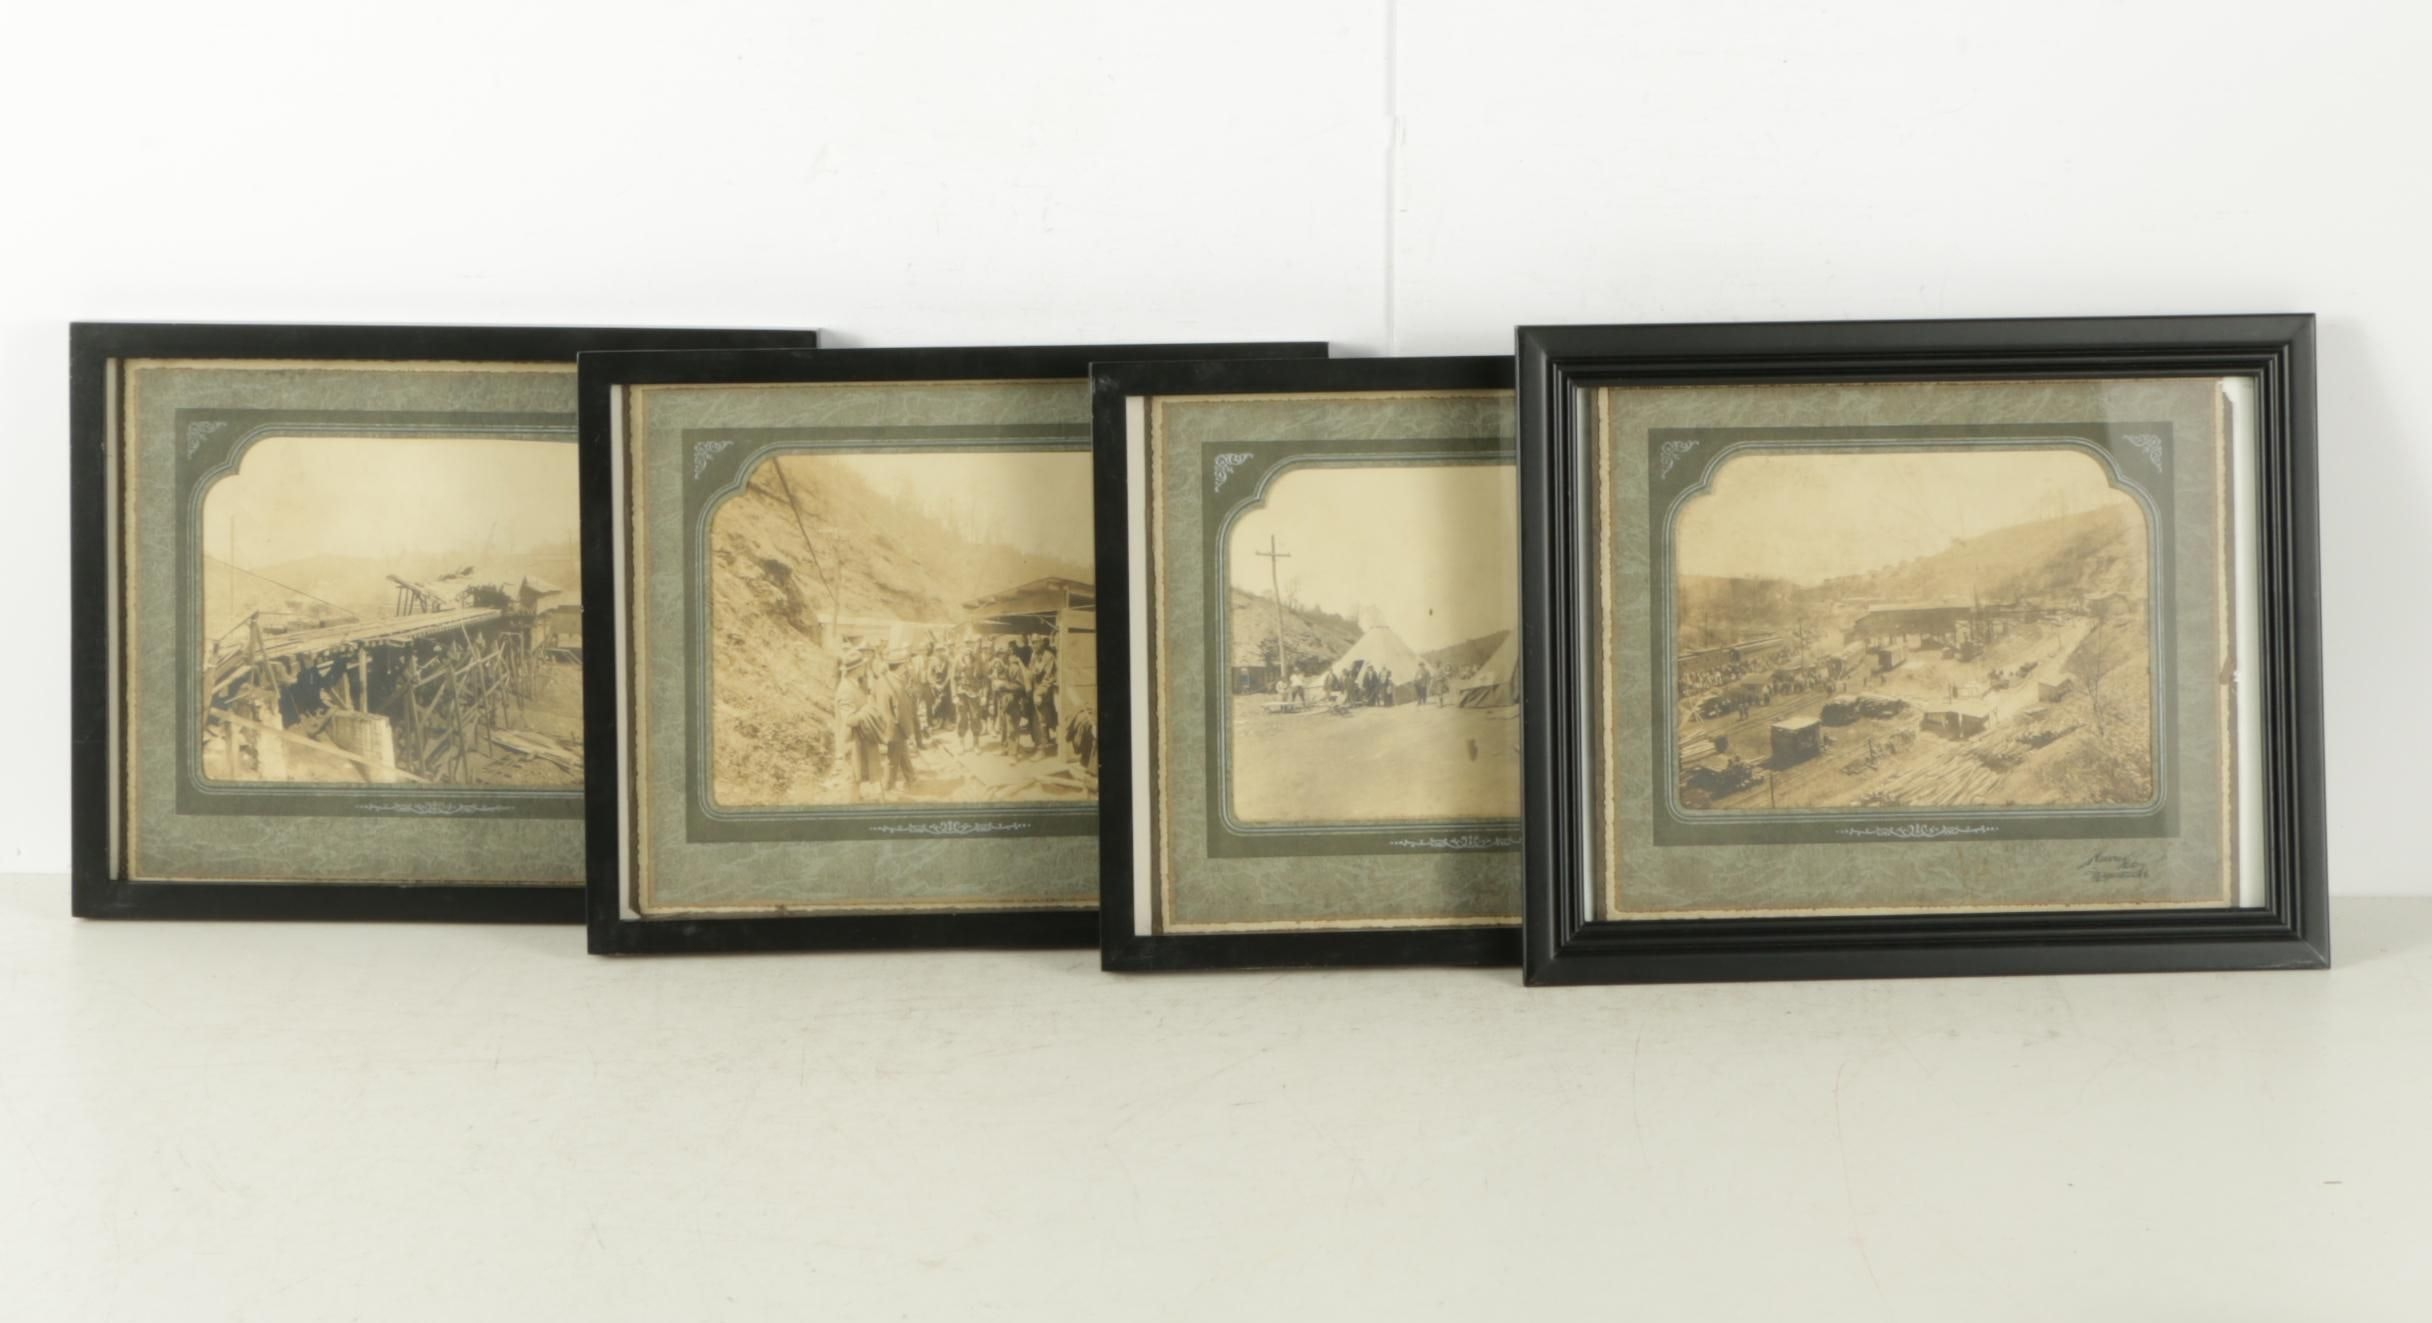 Gelatin-Silver Photographs of Miners